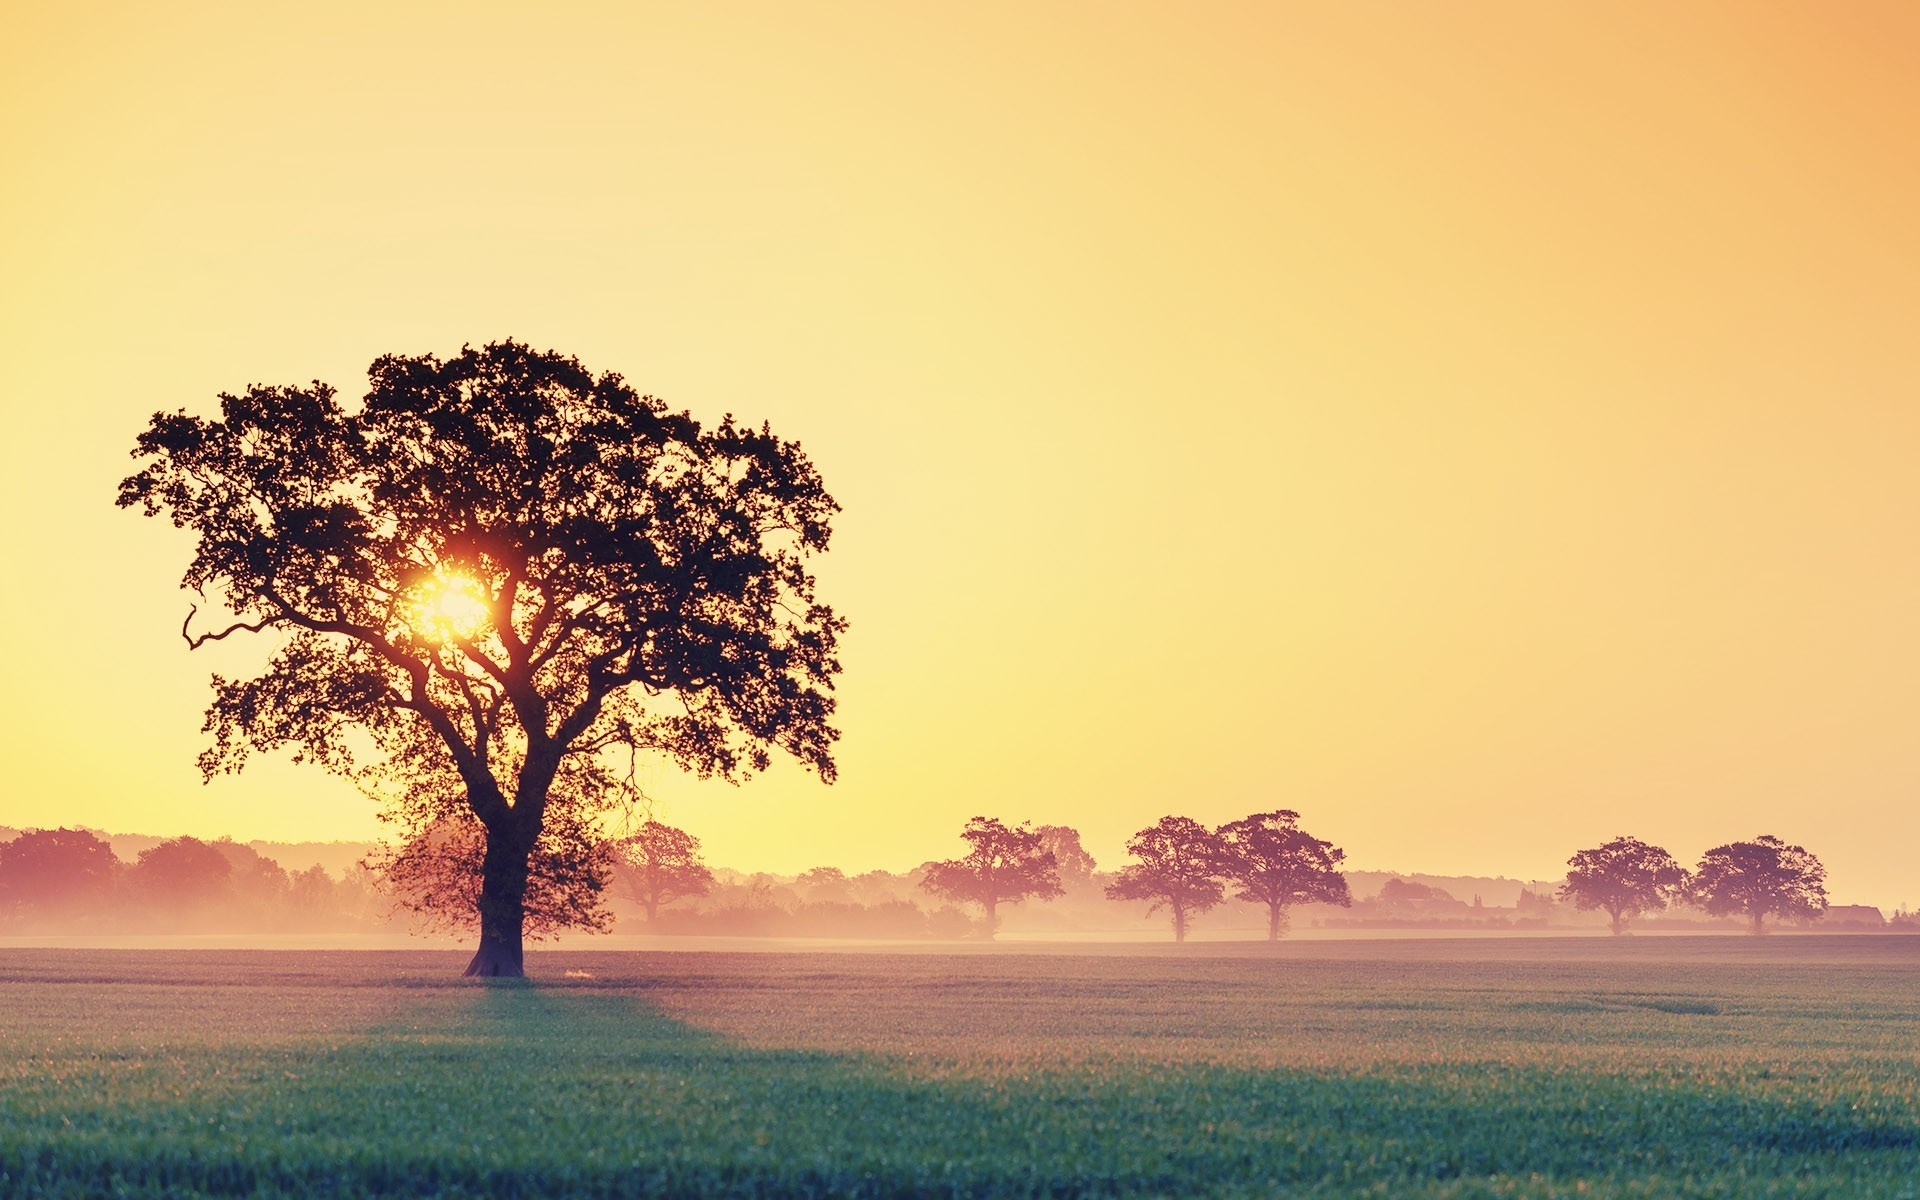 tree-silhouettes-in-the-misty-sunrise-nature-hd-wallpaper ...